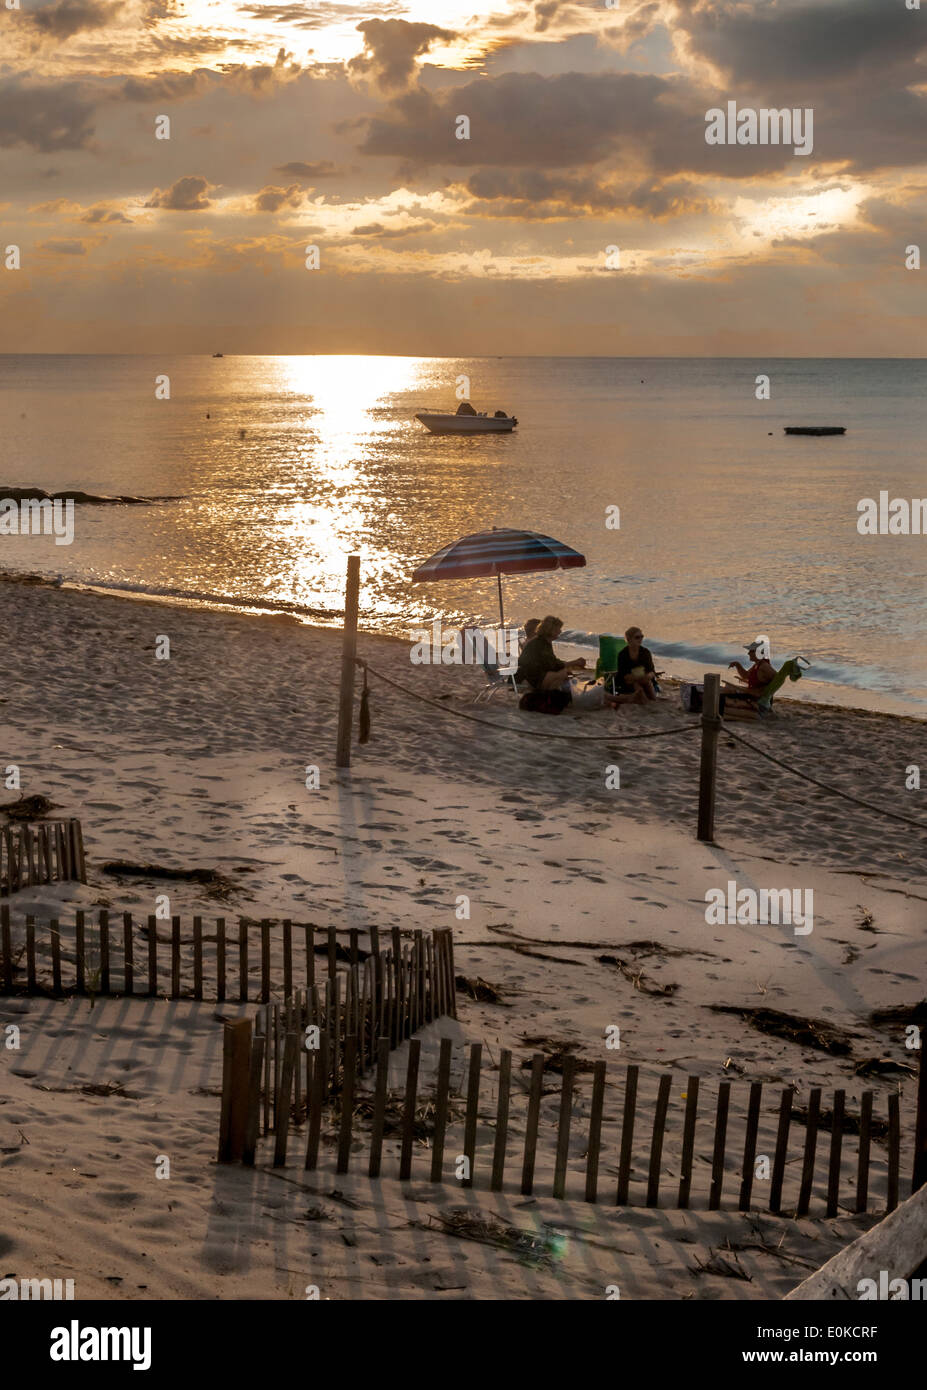 As the Sun begins to set friends sit enjoying the last warmth of the summer sun at Saint Landing Brewster, Ma.,U.S.A. Stock Photo